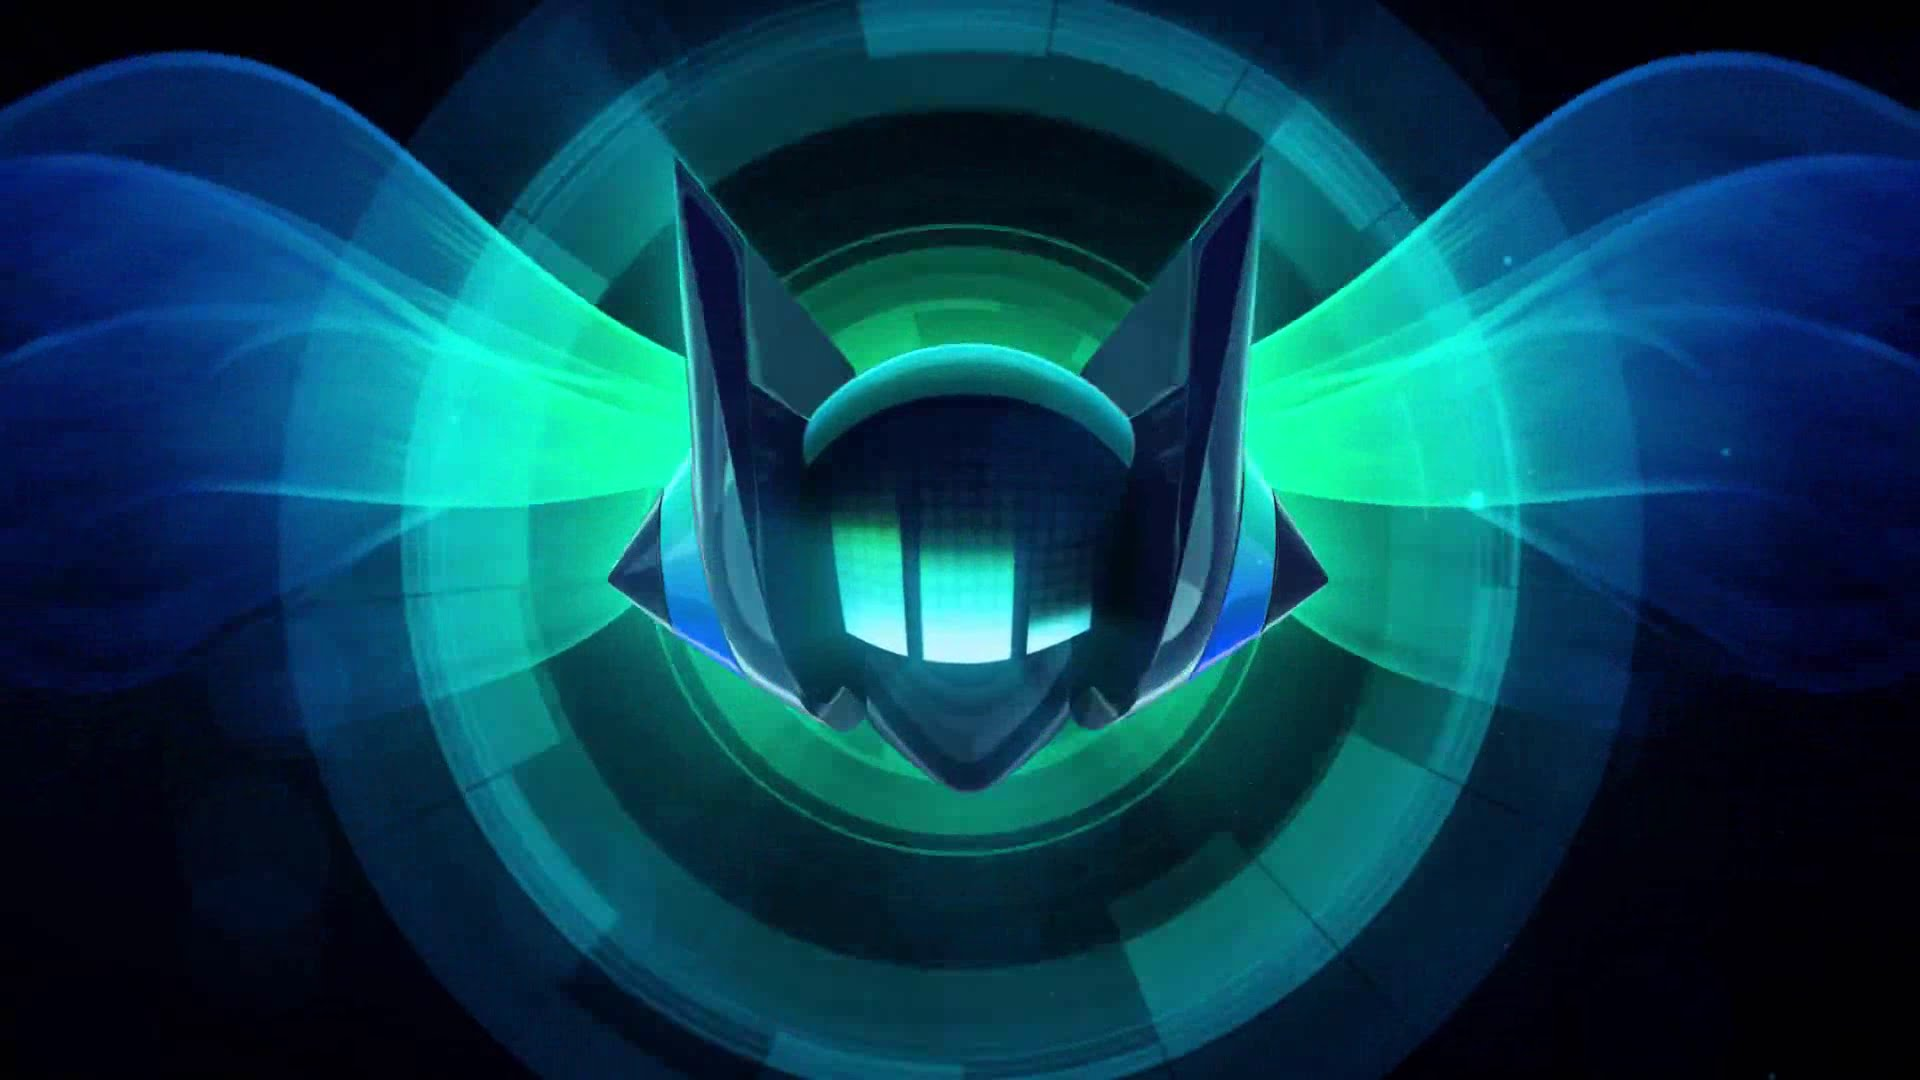 DJ Sona Animated Wallpaper Kinetic 1920x1080